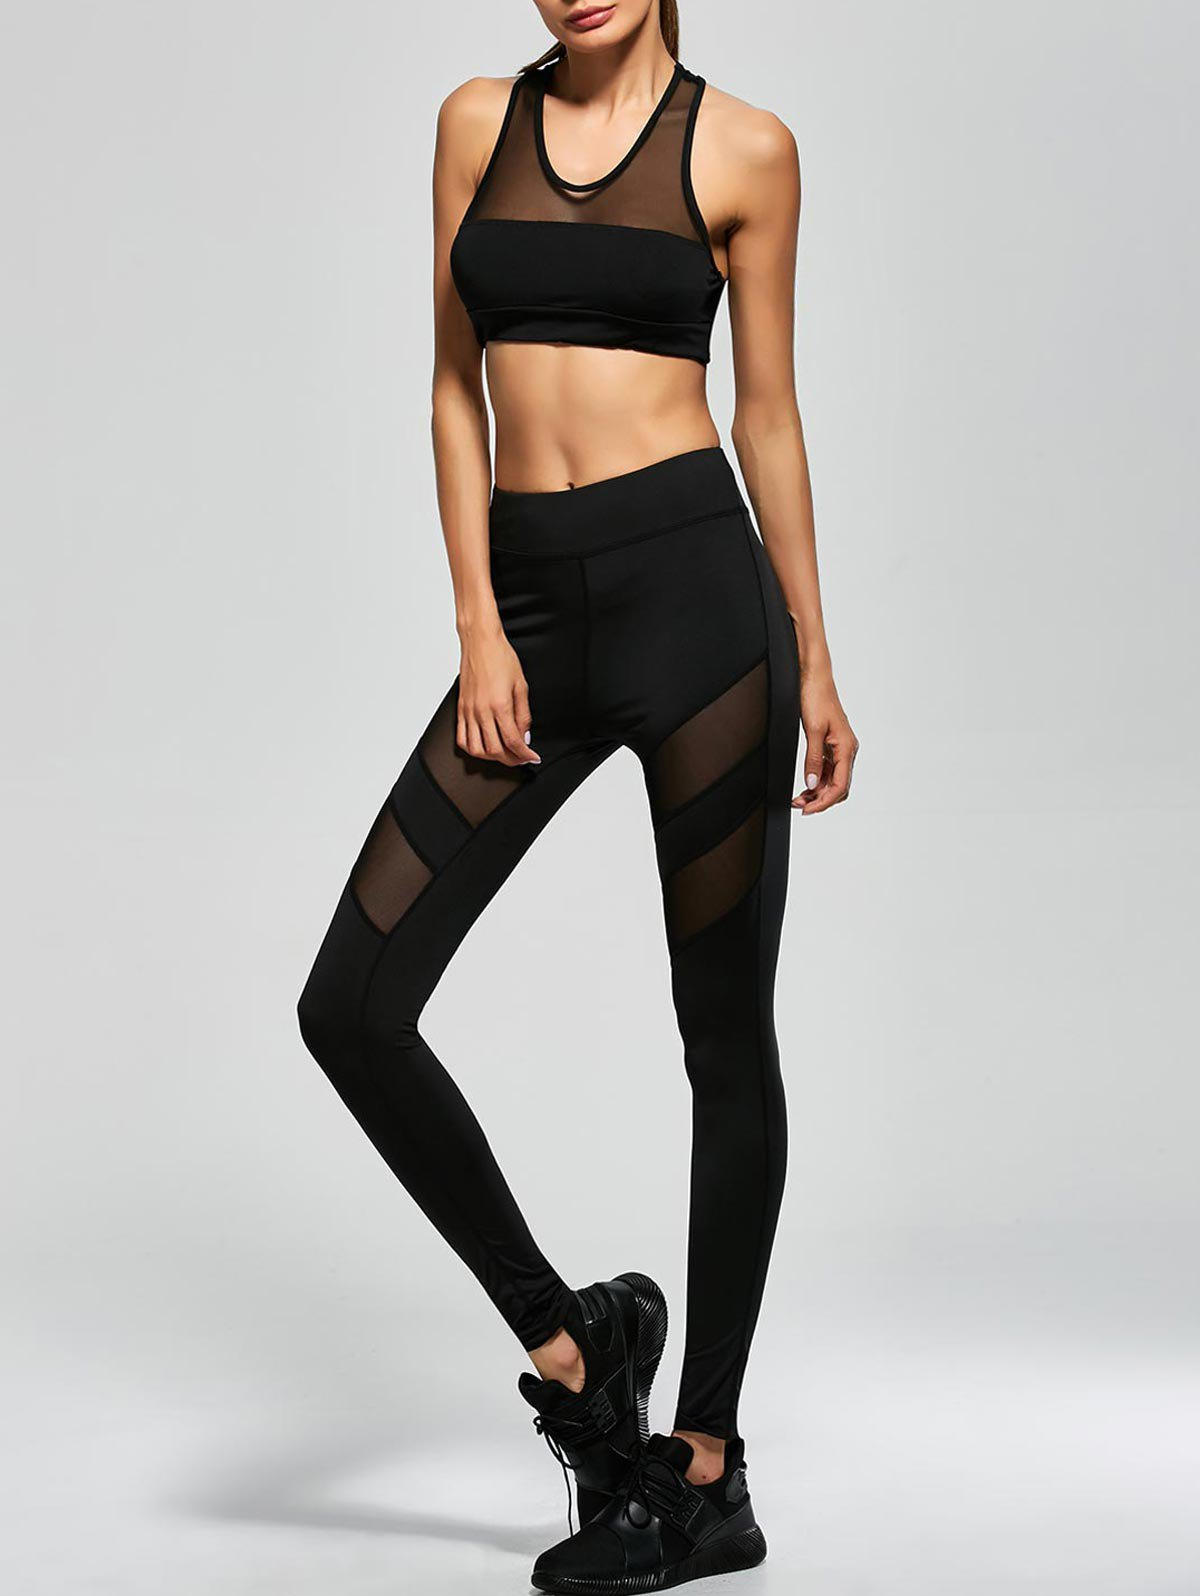 Mesh Panel Tank Top and Stretch Pants Yoga Suit